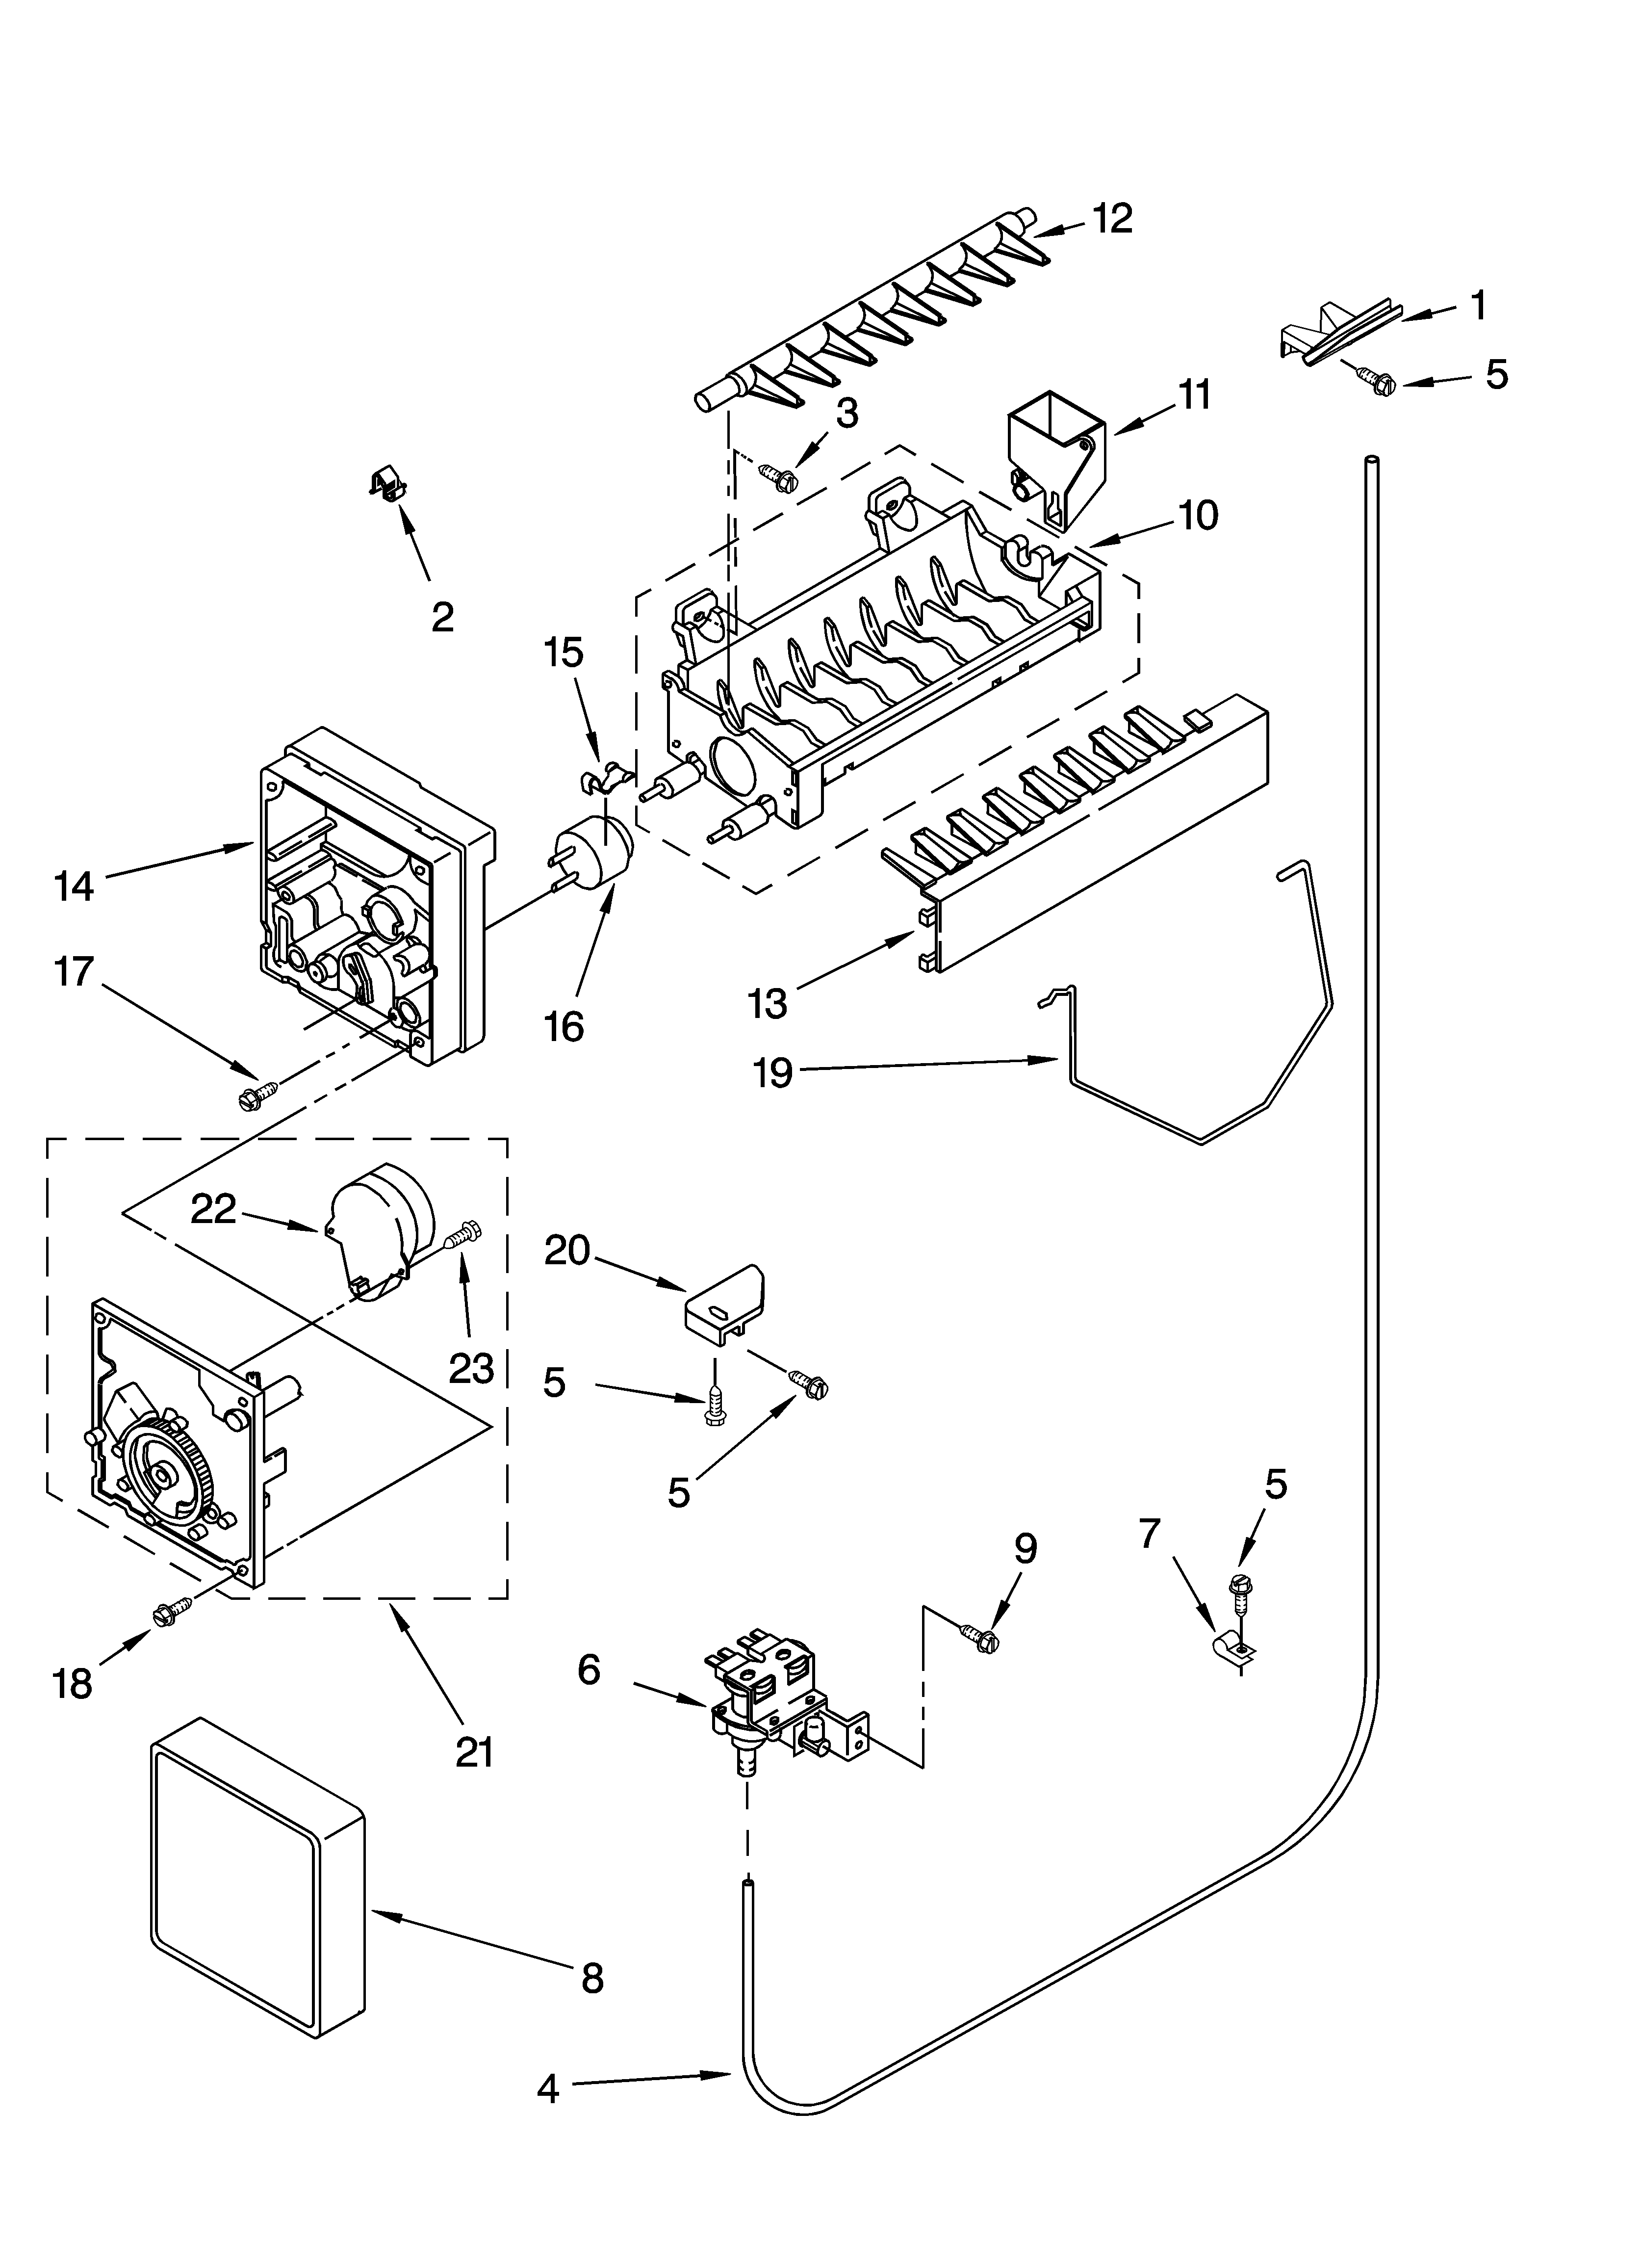 Whirlpool ED2CHQXKB06 icemaker parts diagram